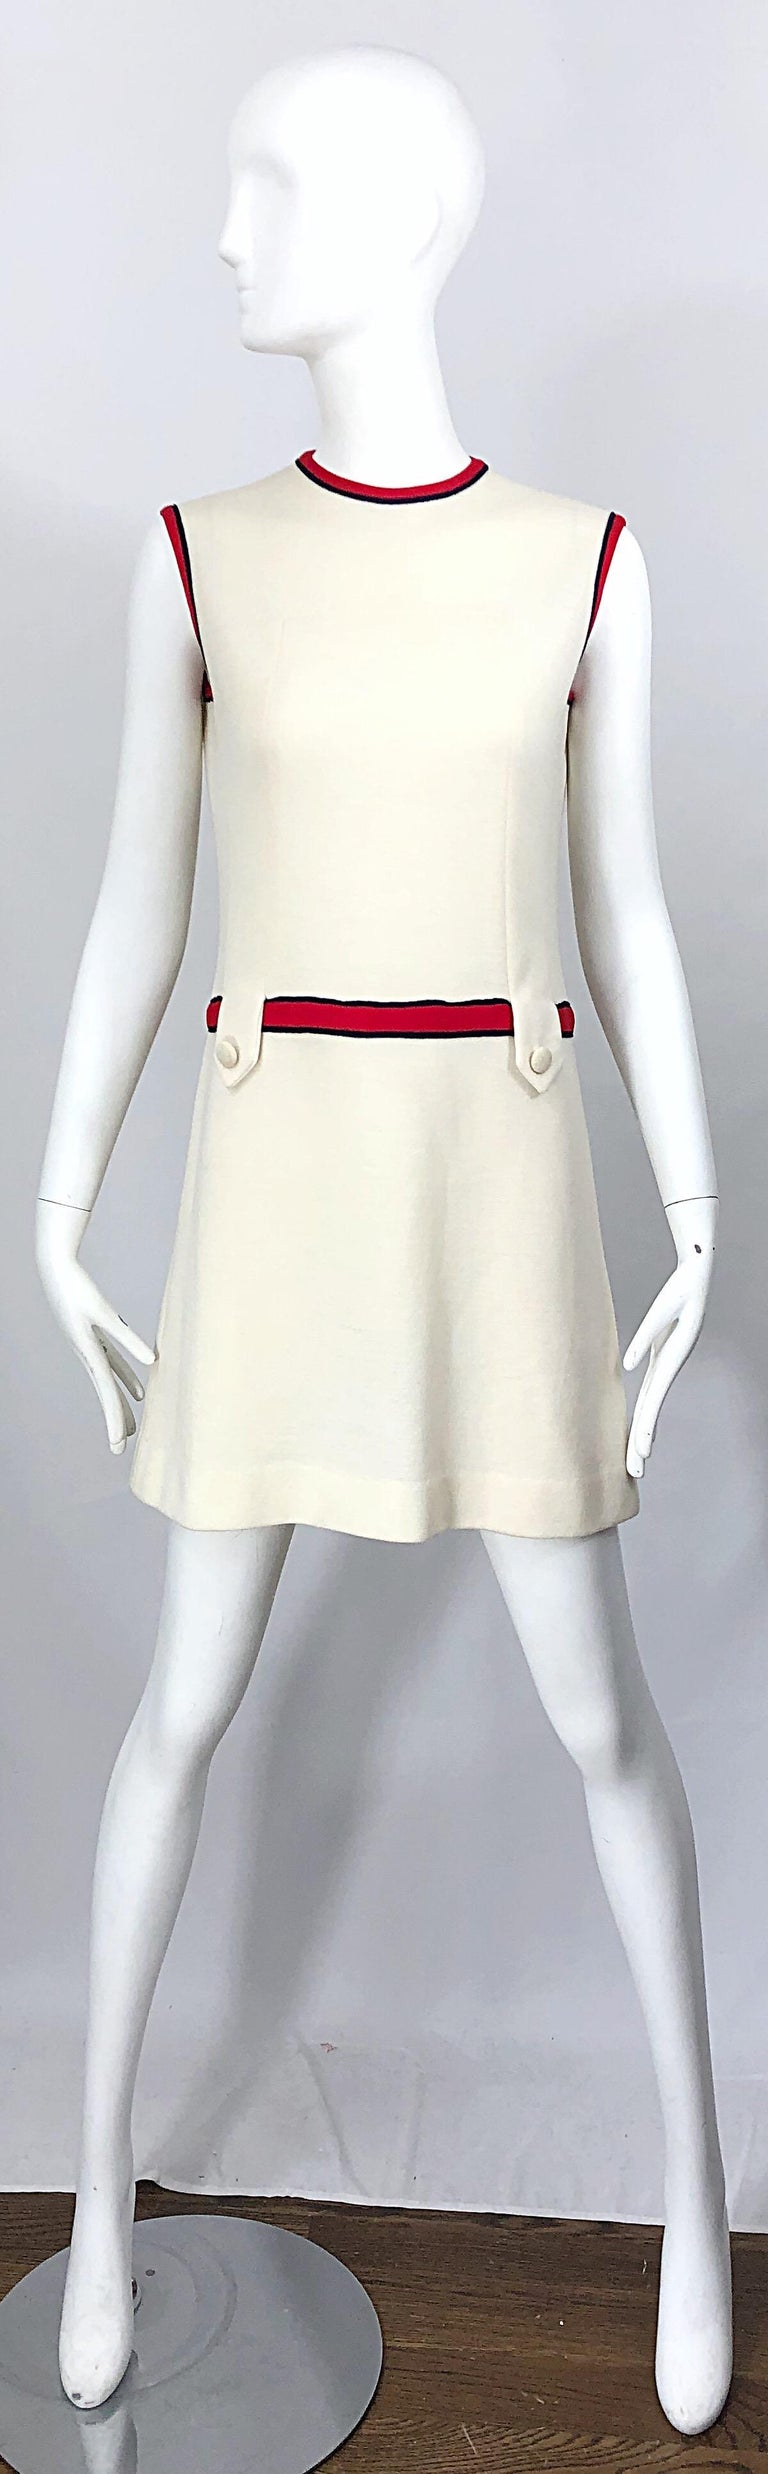 Chic 1960s Ivory + Navy Blue + Red Knit Vintage 60s Nautical Mod Shift Dress For Sale 8